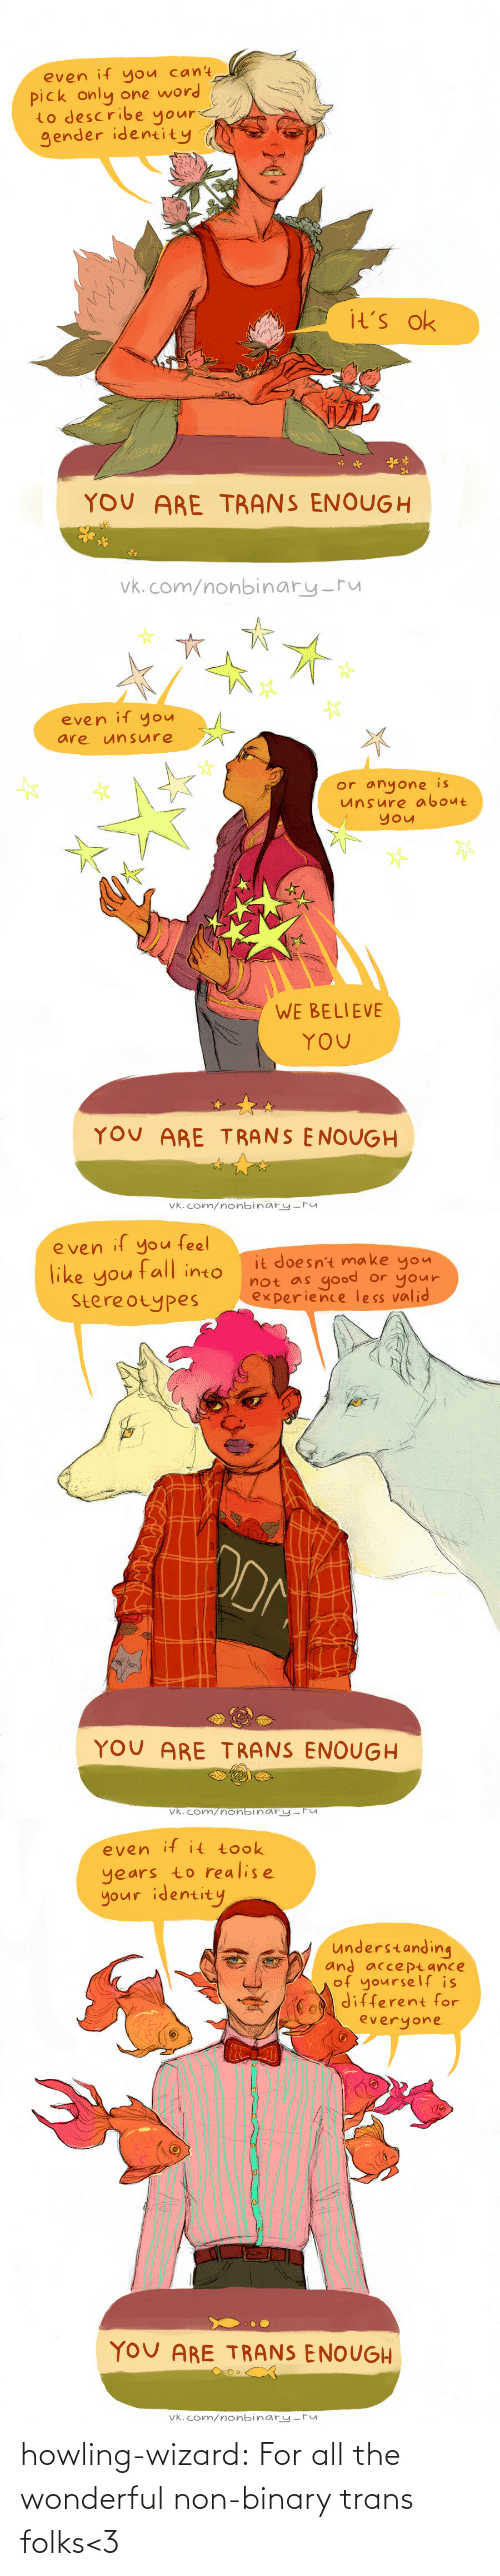 Folks: howling-wizard: For all the wonderful non-binary trans folks<3